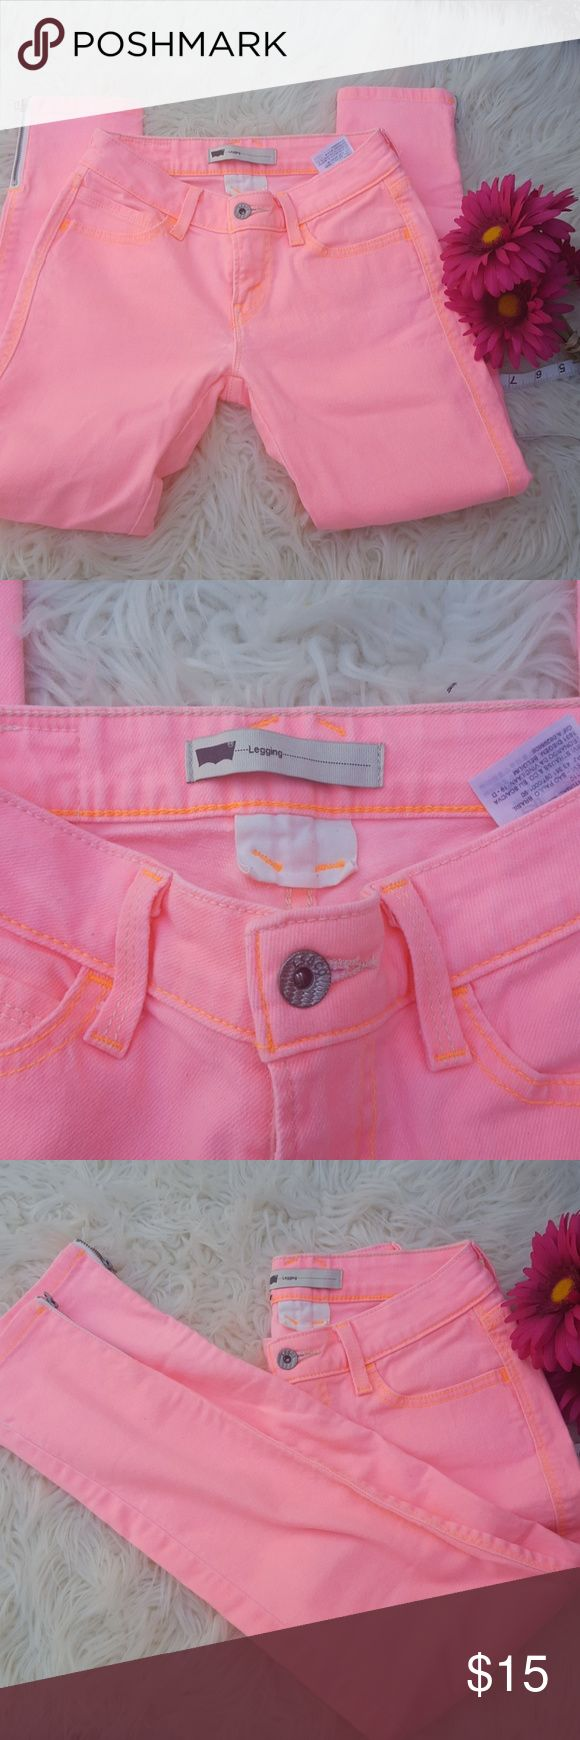 Levis neon pink jeans Low-rise with zipper on the ankle. Tag says leggins. Levi's Jeans Skinny